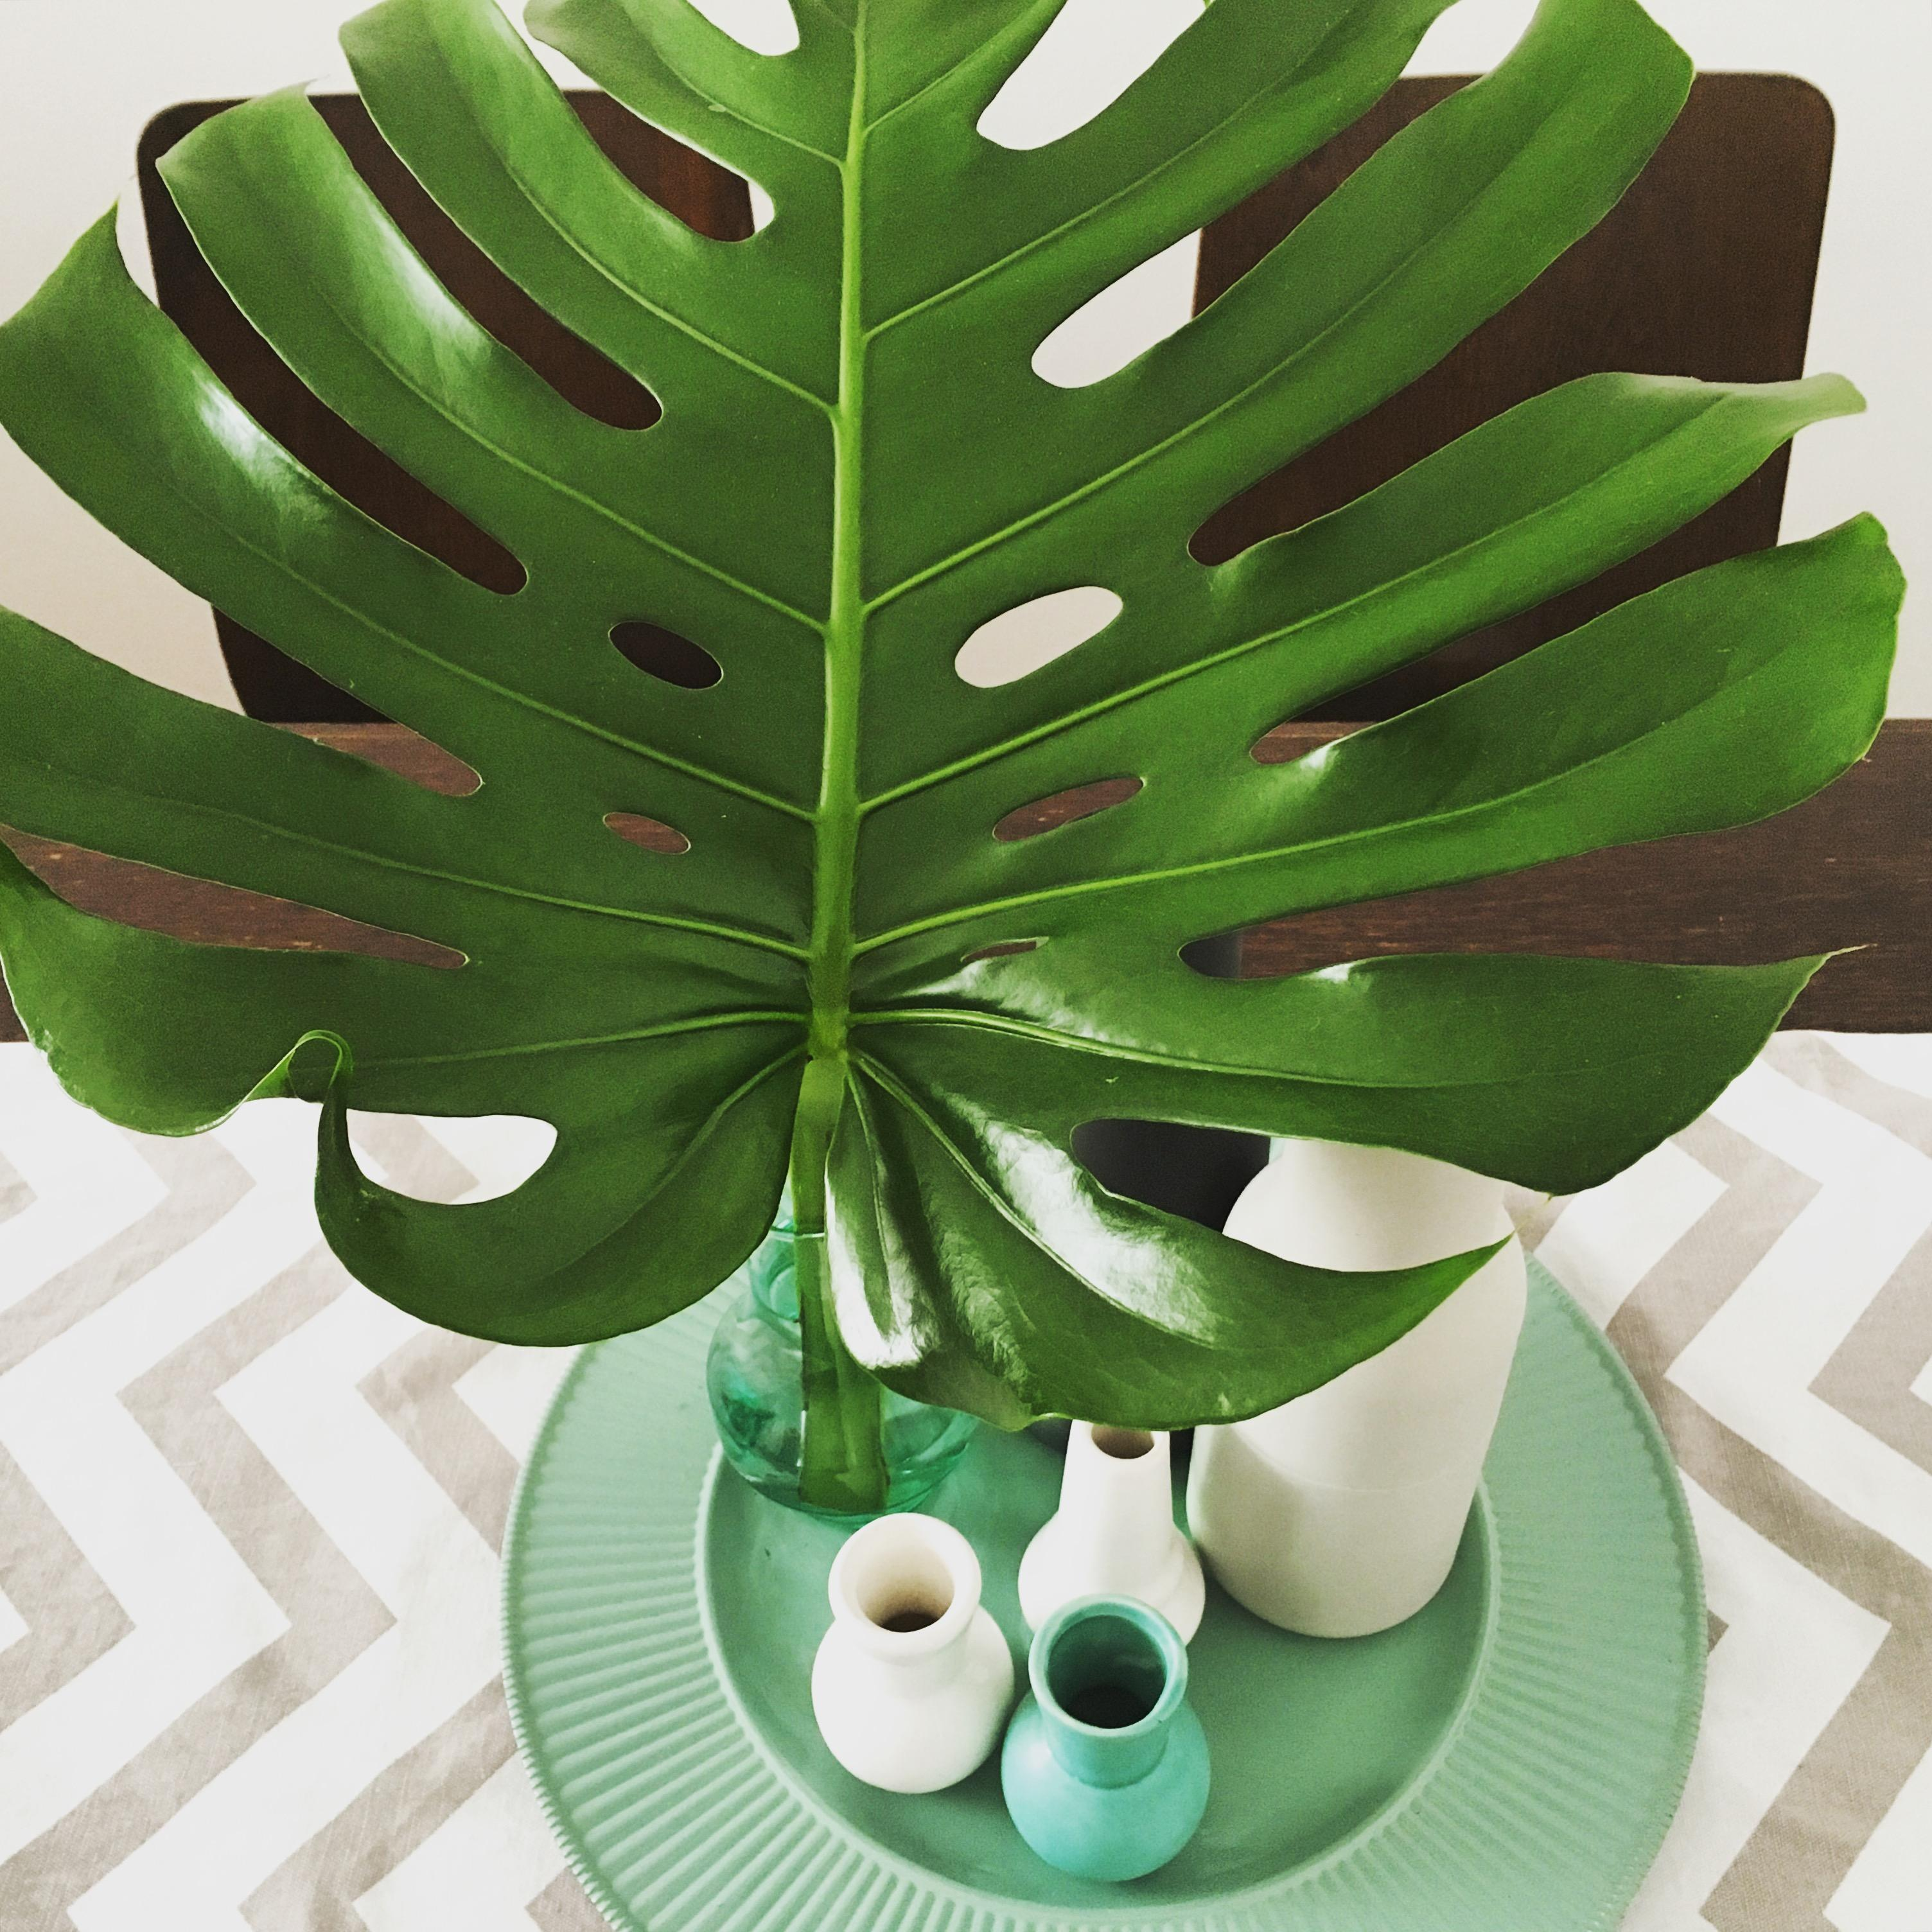 Mein riesen Monsterablatt #monstera #neuhier #jungle #urbanjungle #botanical #esstisch